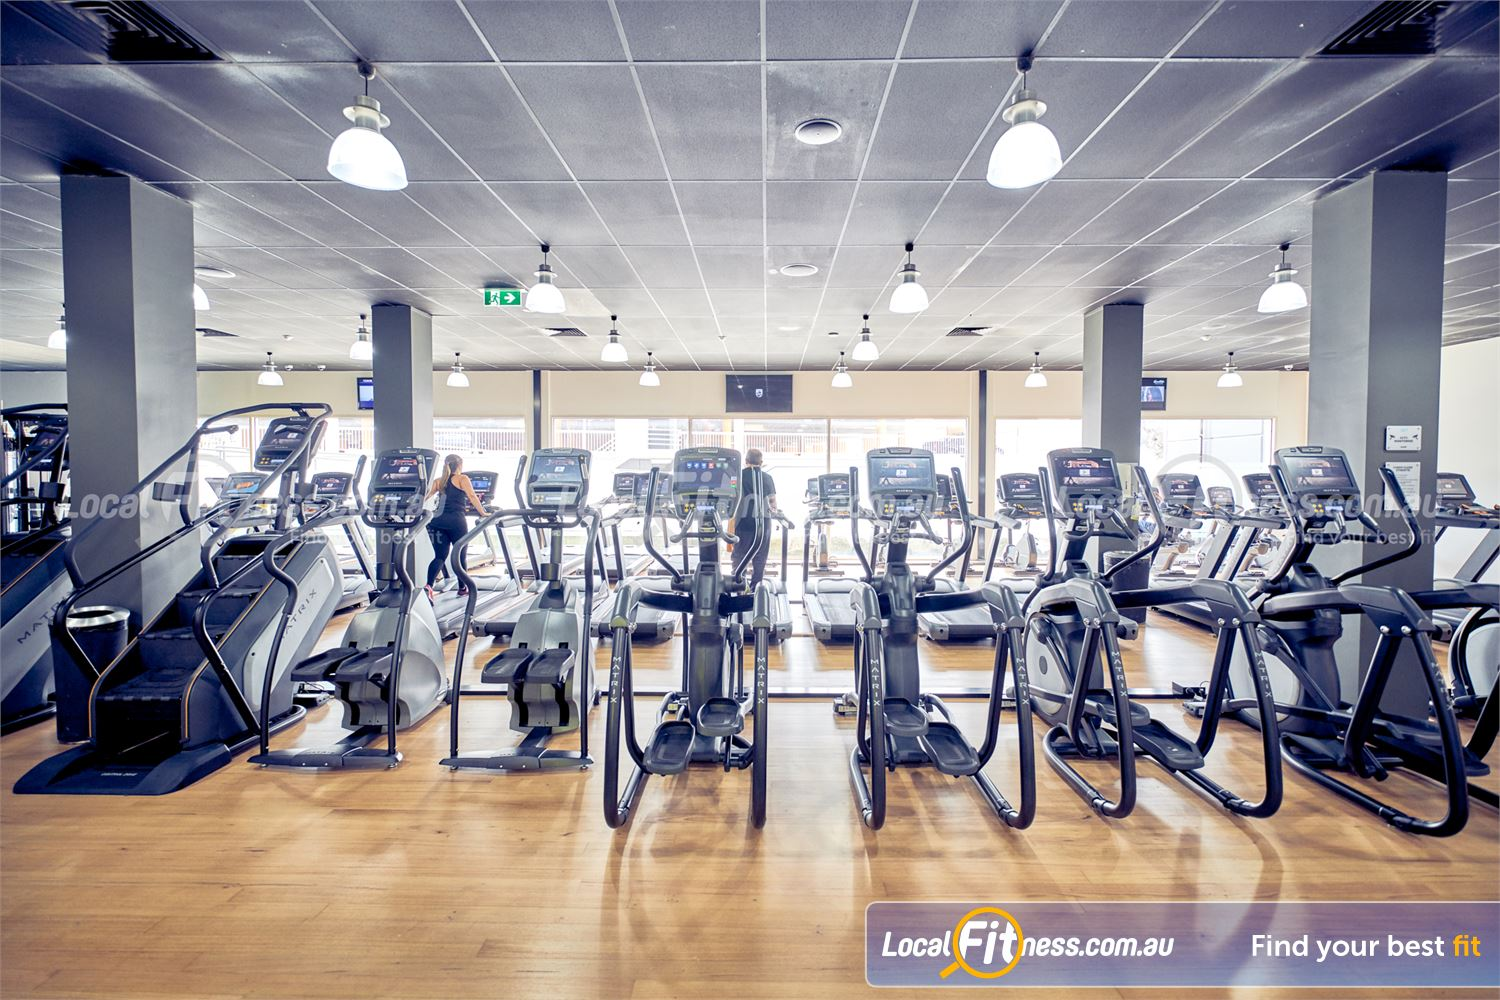 Goodlife Health Clubs Knox City Wantirna South State of the art MATRIX cardio with personal entertainment screens.